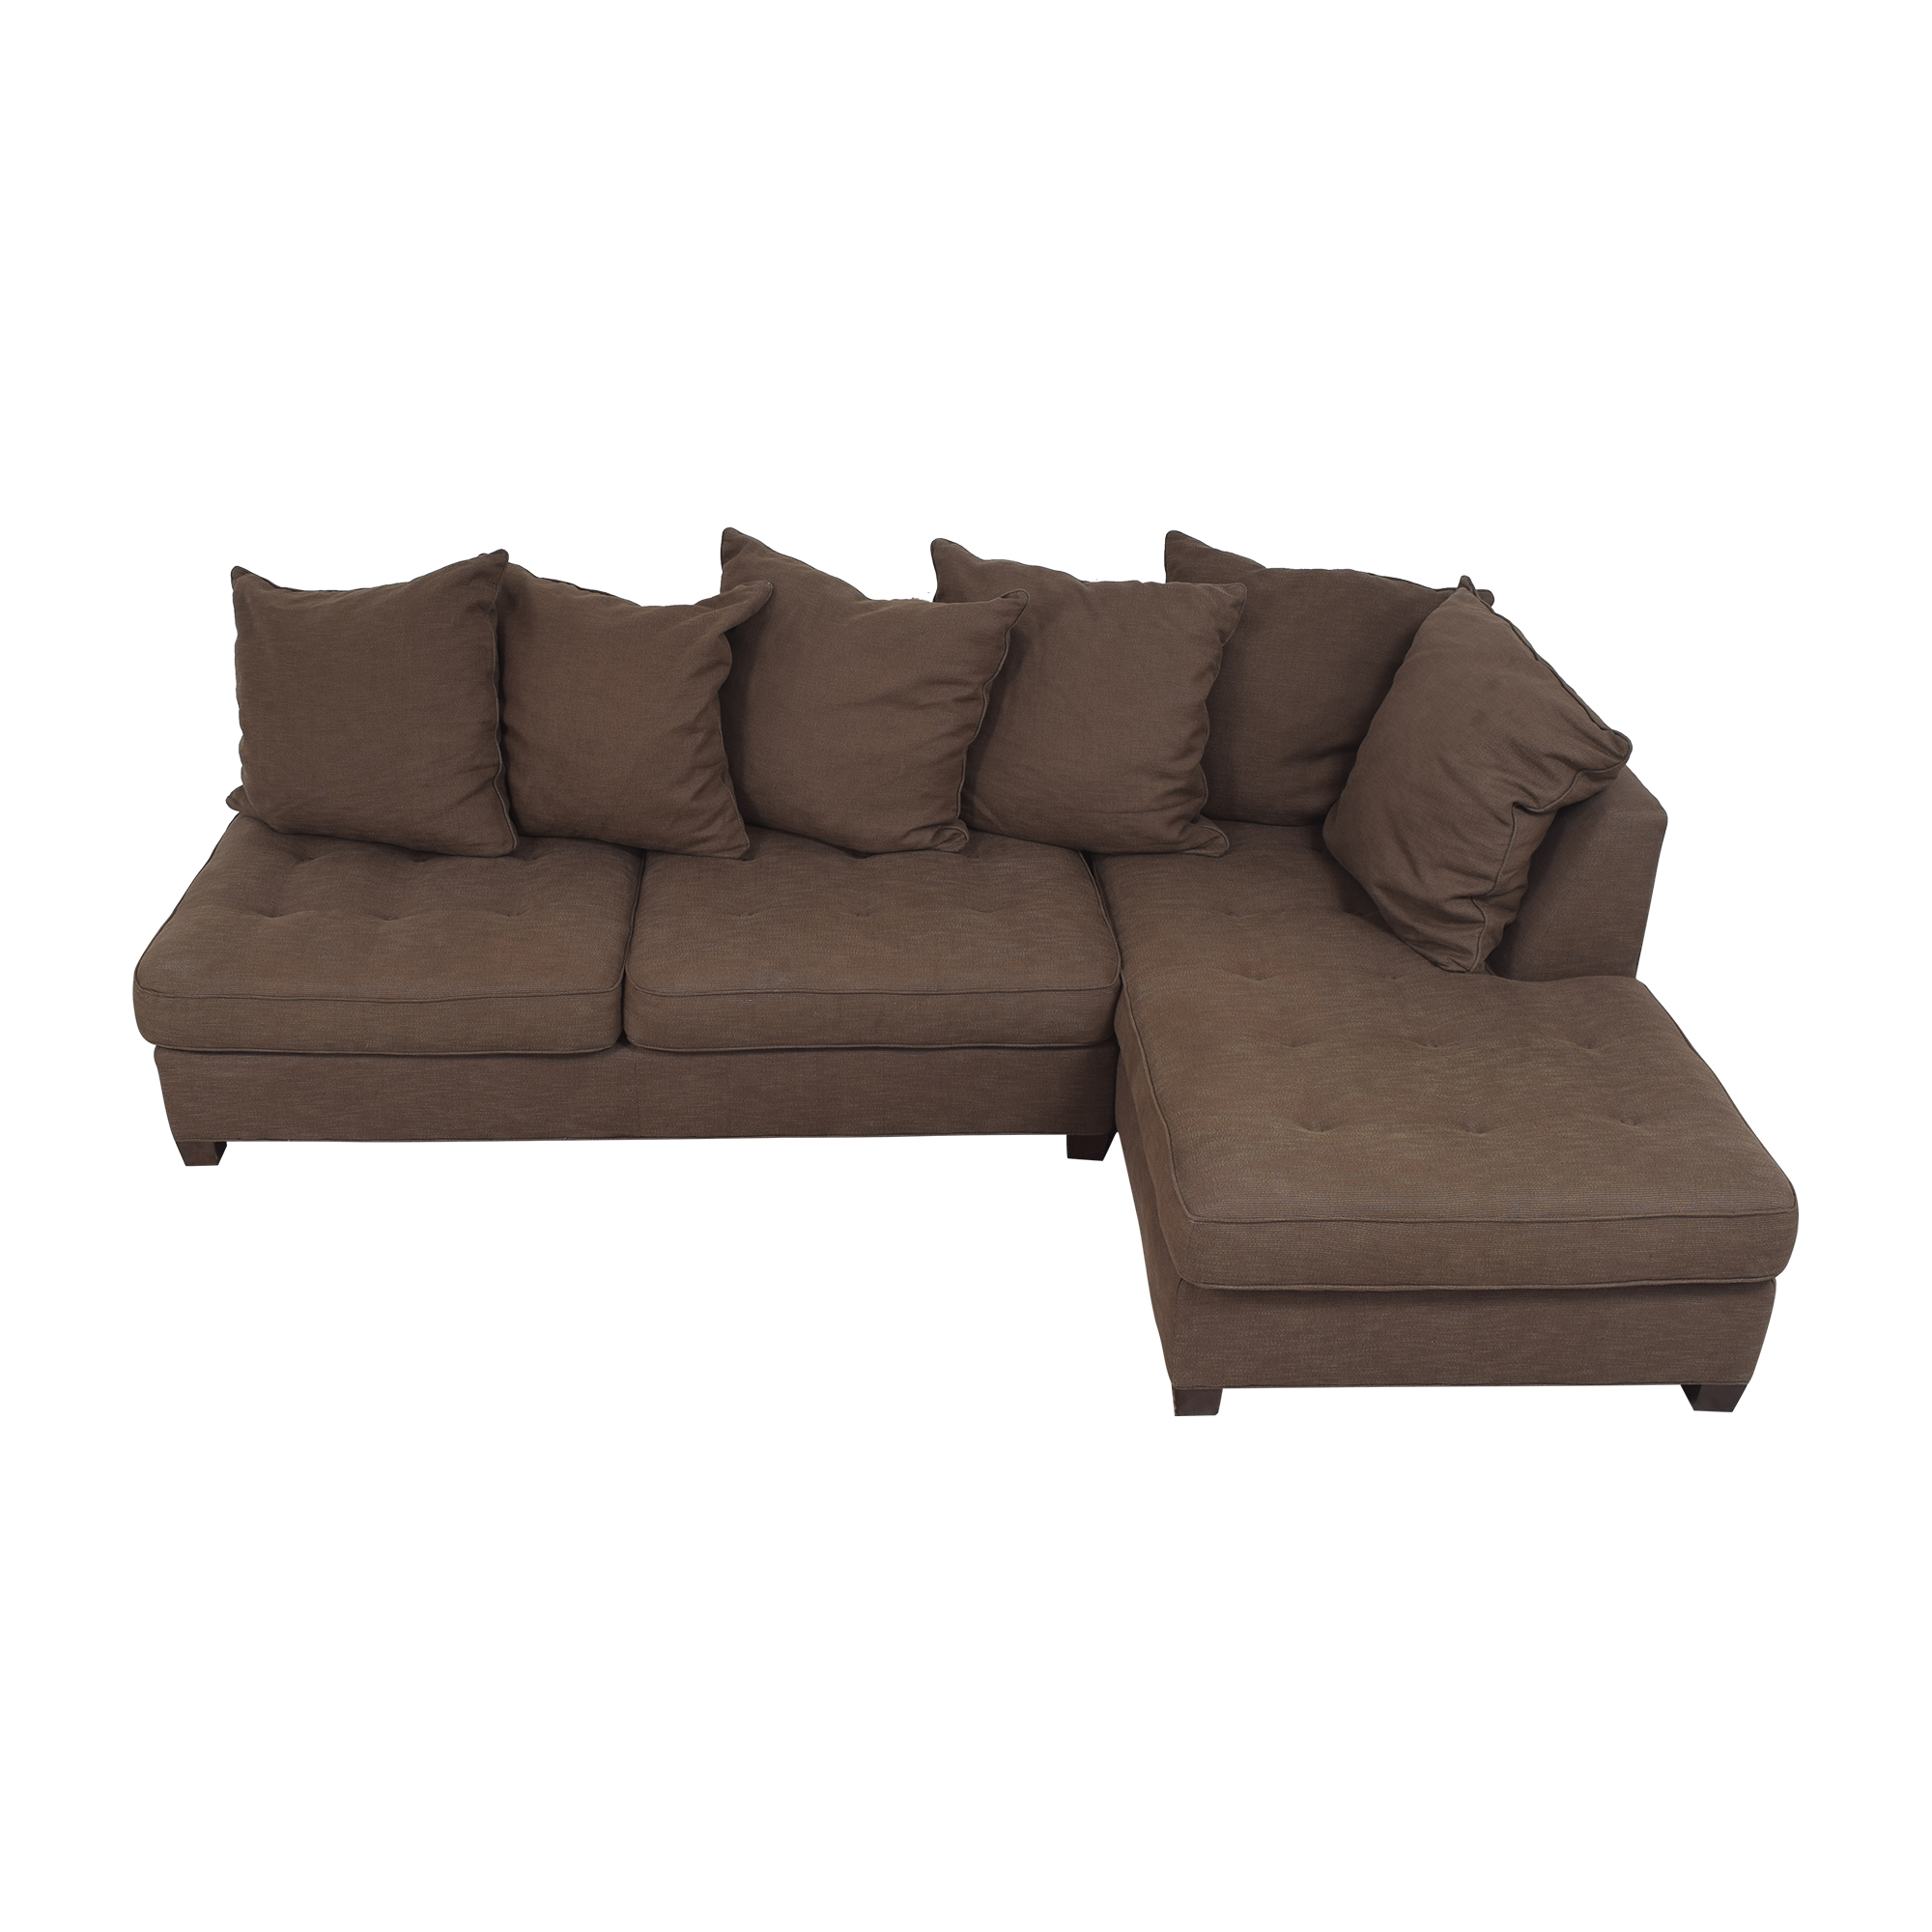 Pottery Barn Pottery Barn Sectional Sofa with Chaise second hand